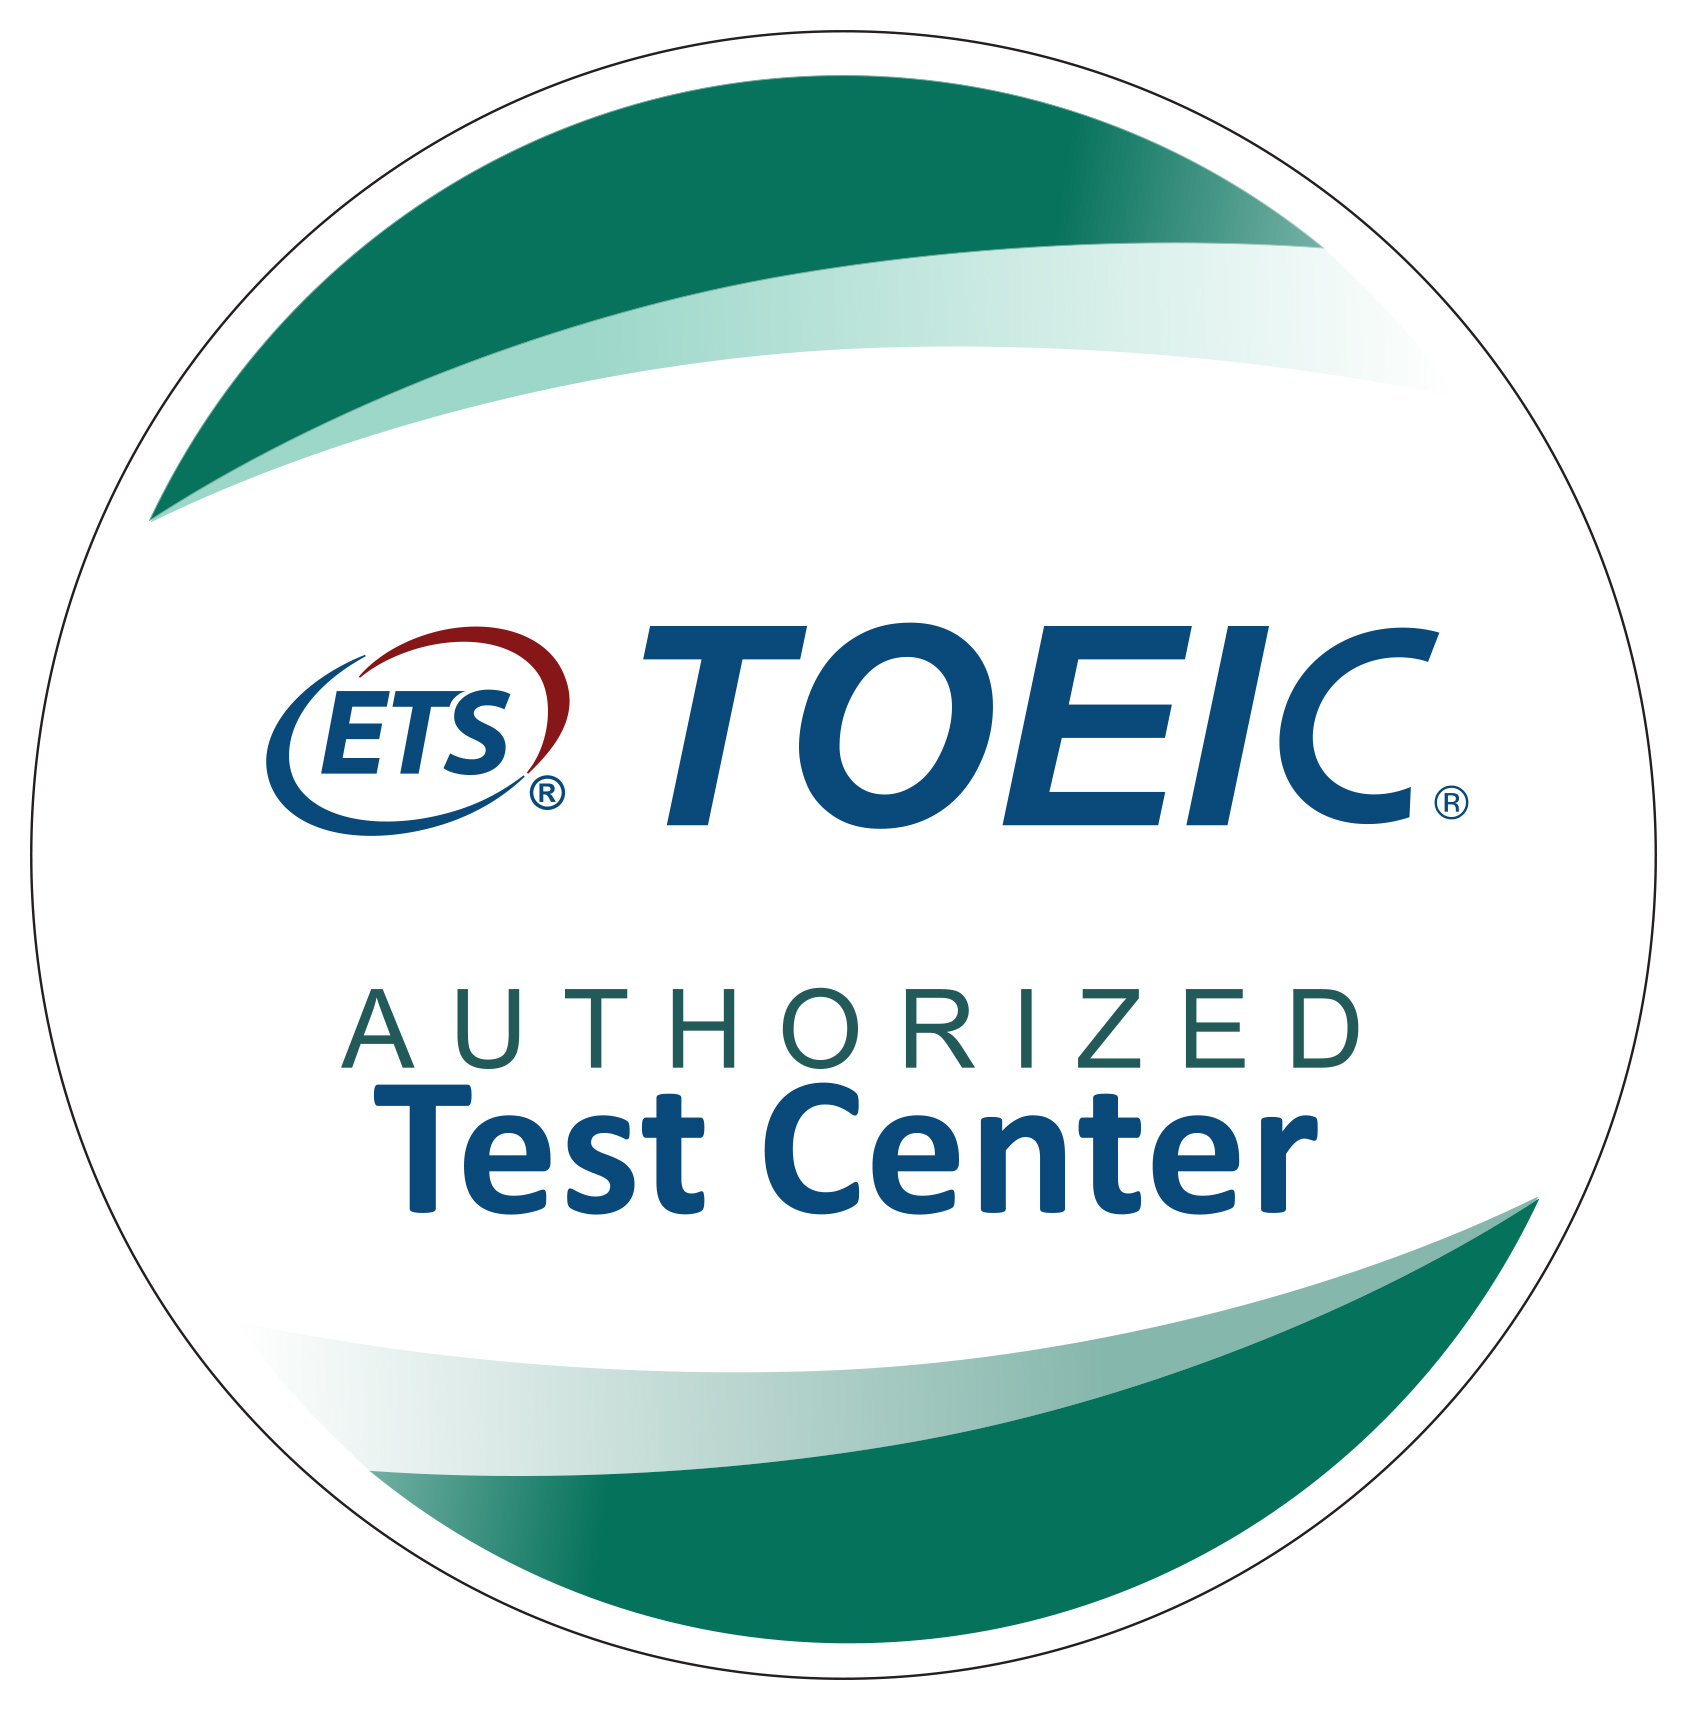 Exame TOEIC by ETS.